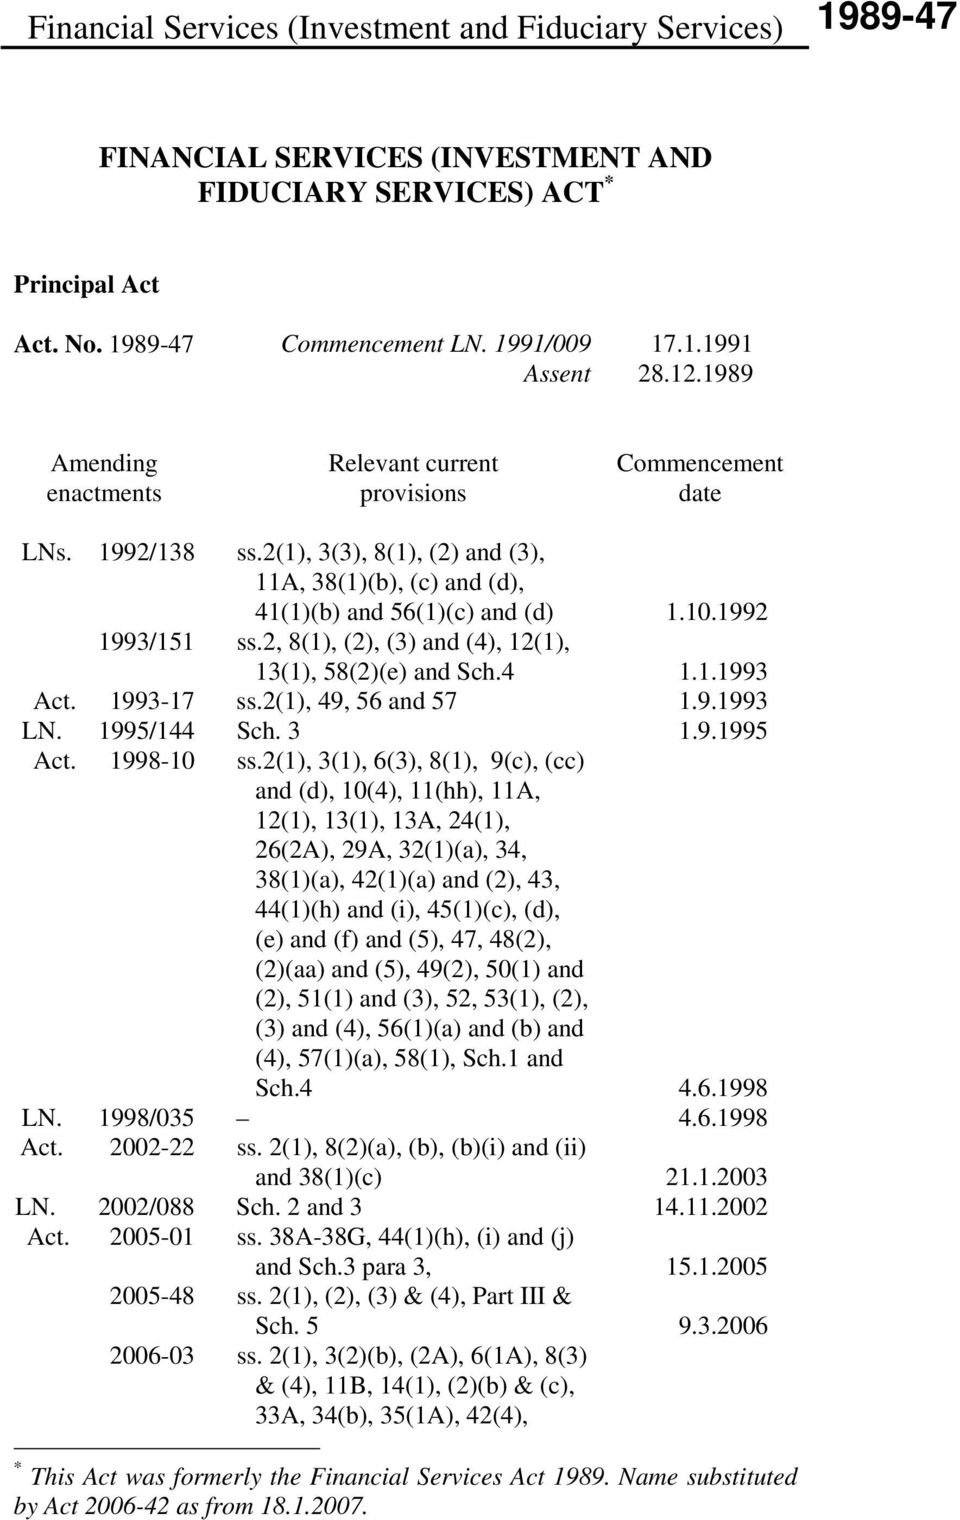 2, 8(1), (2), (3) and (4), 12(1), 13(1), 58(2)(e) and Sch.4 1.1.1993 Act. 1993-17 ss.2(1), 49, 56 and 57 1.9.1993 LN. 1995/144 Sch. 3 1.9.1995 Act. 1998-10 ss.